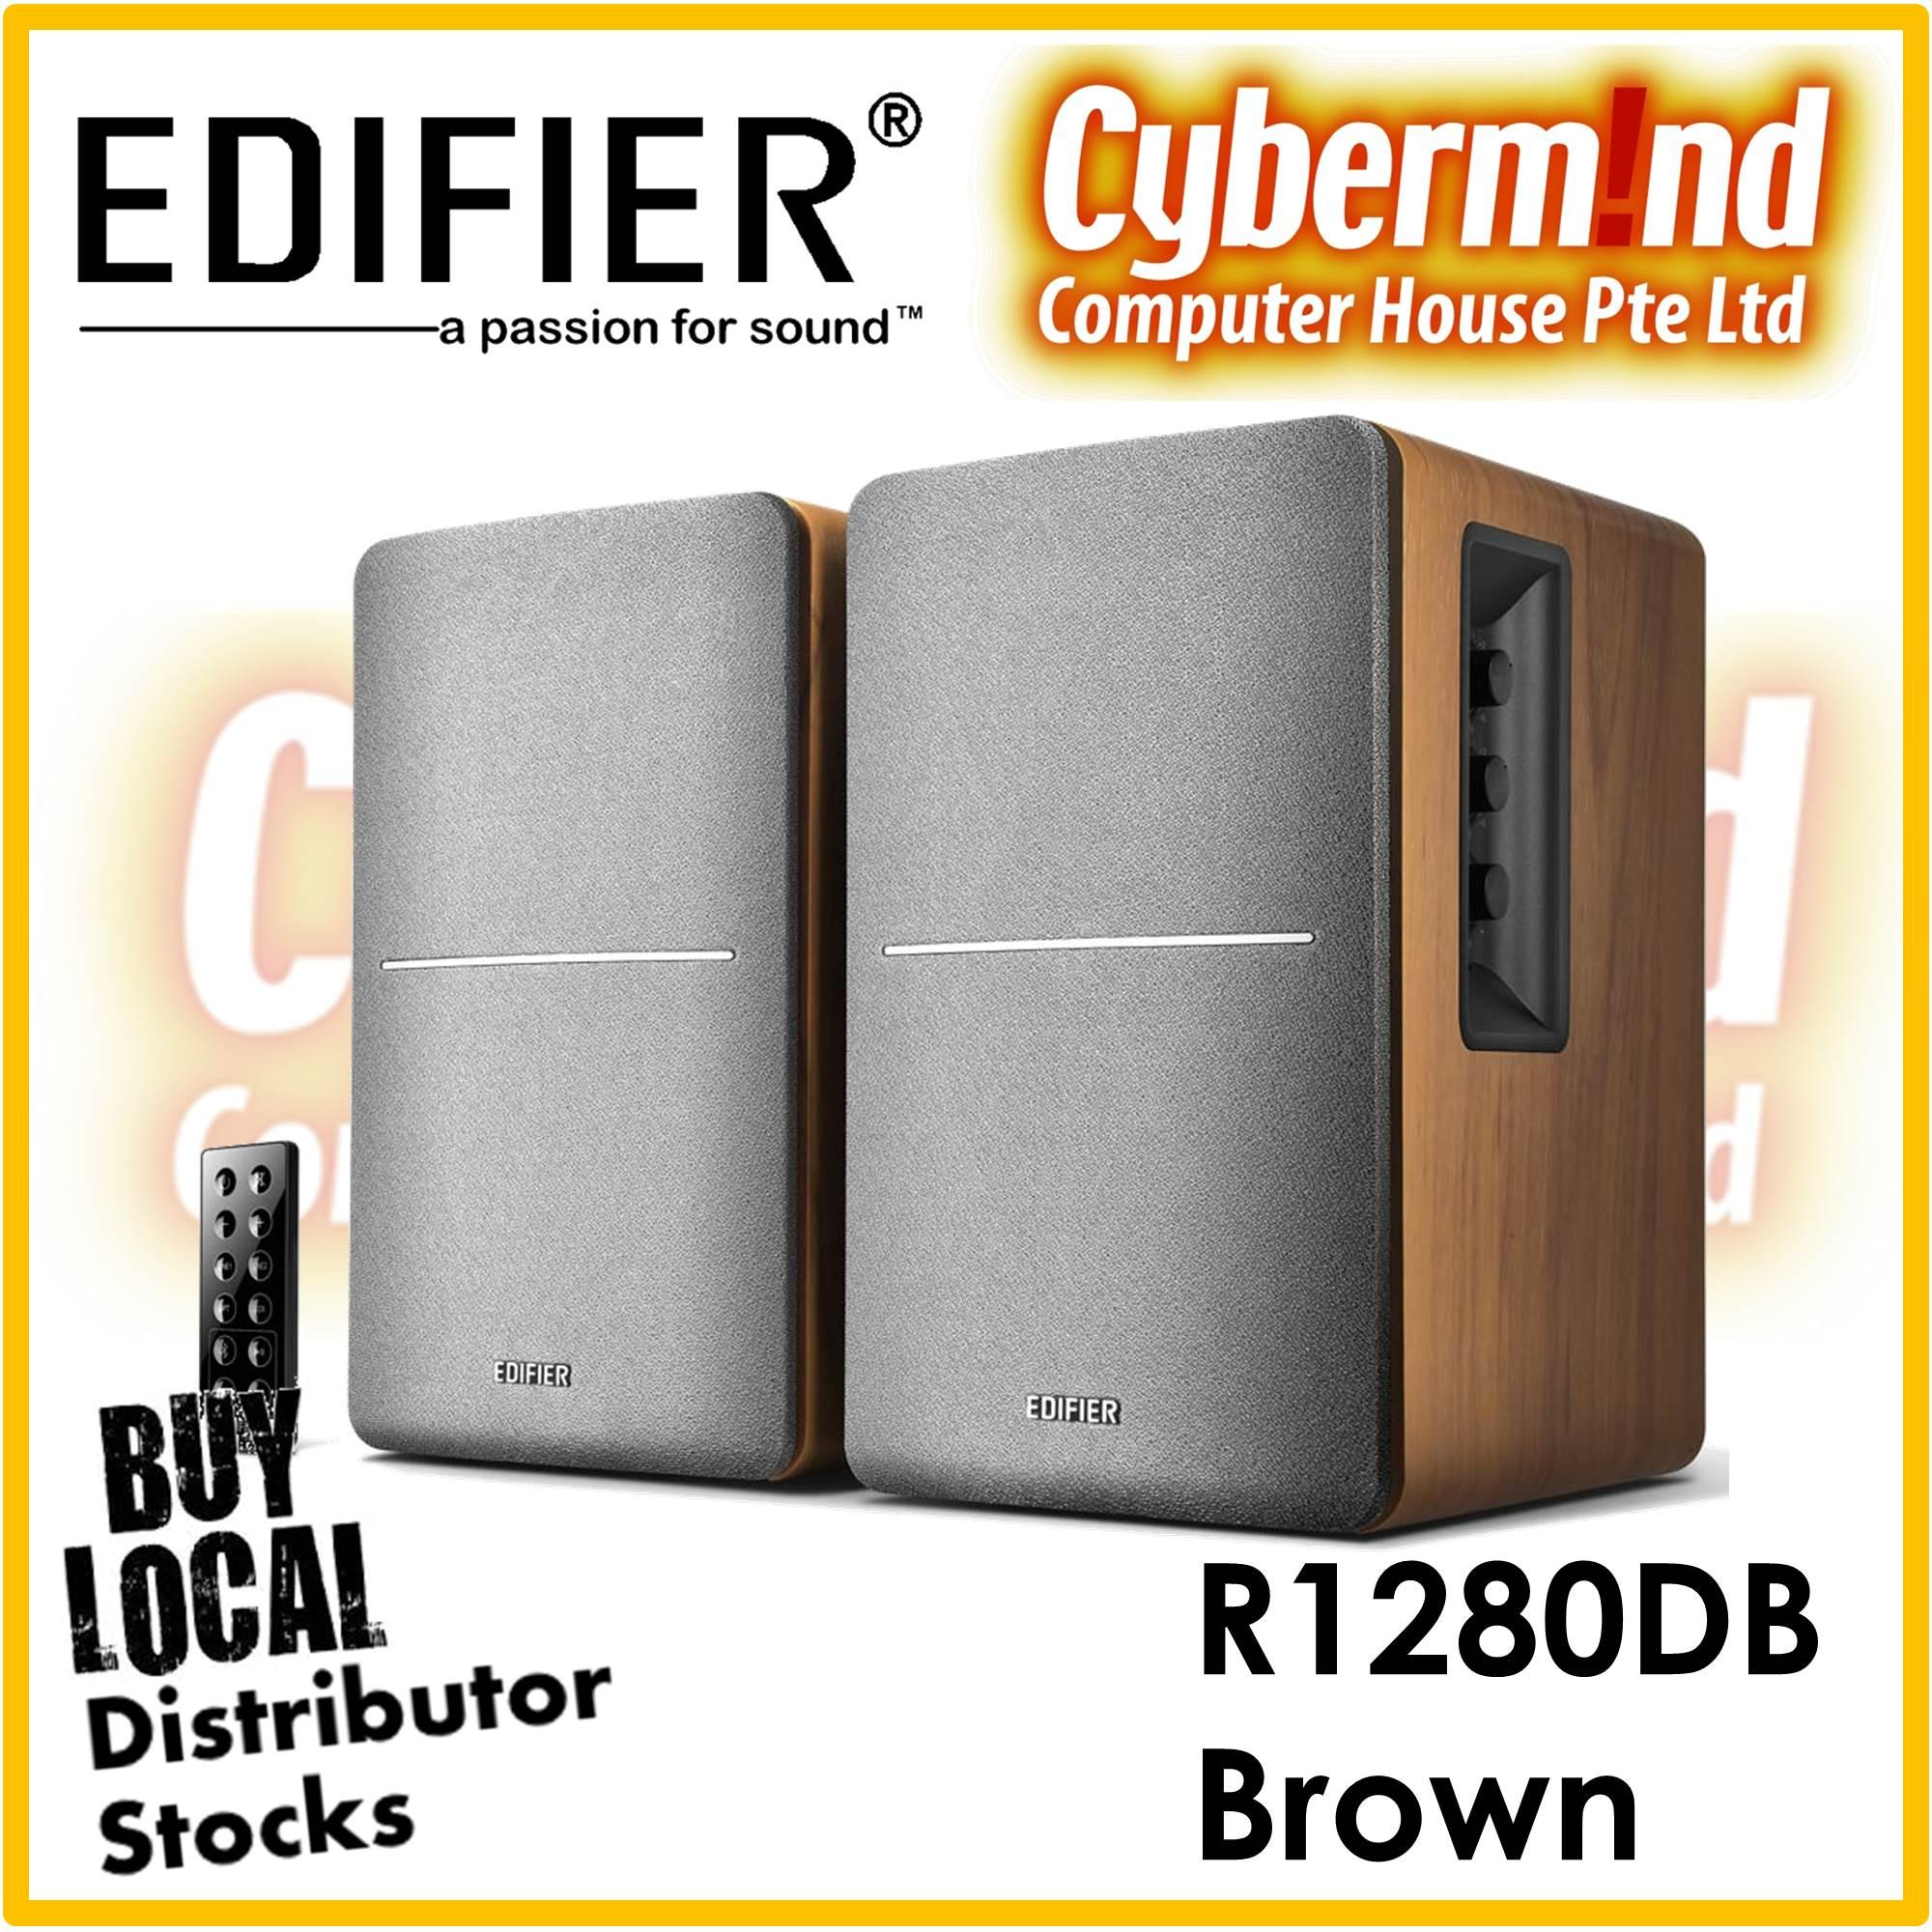 Edifier R1280DB 2.0 Bluetooth Bookshelf Speaker - BROWN (Local Distributor Stocks / Brought to you by Cybermind 20years in Singapore!)